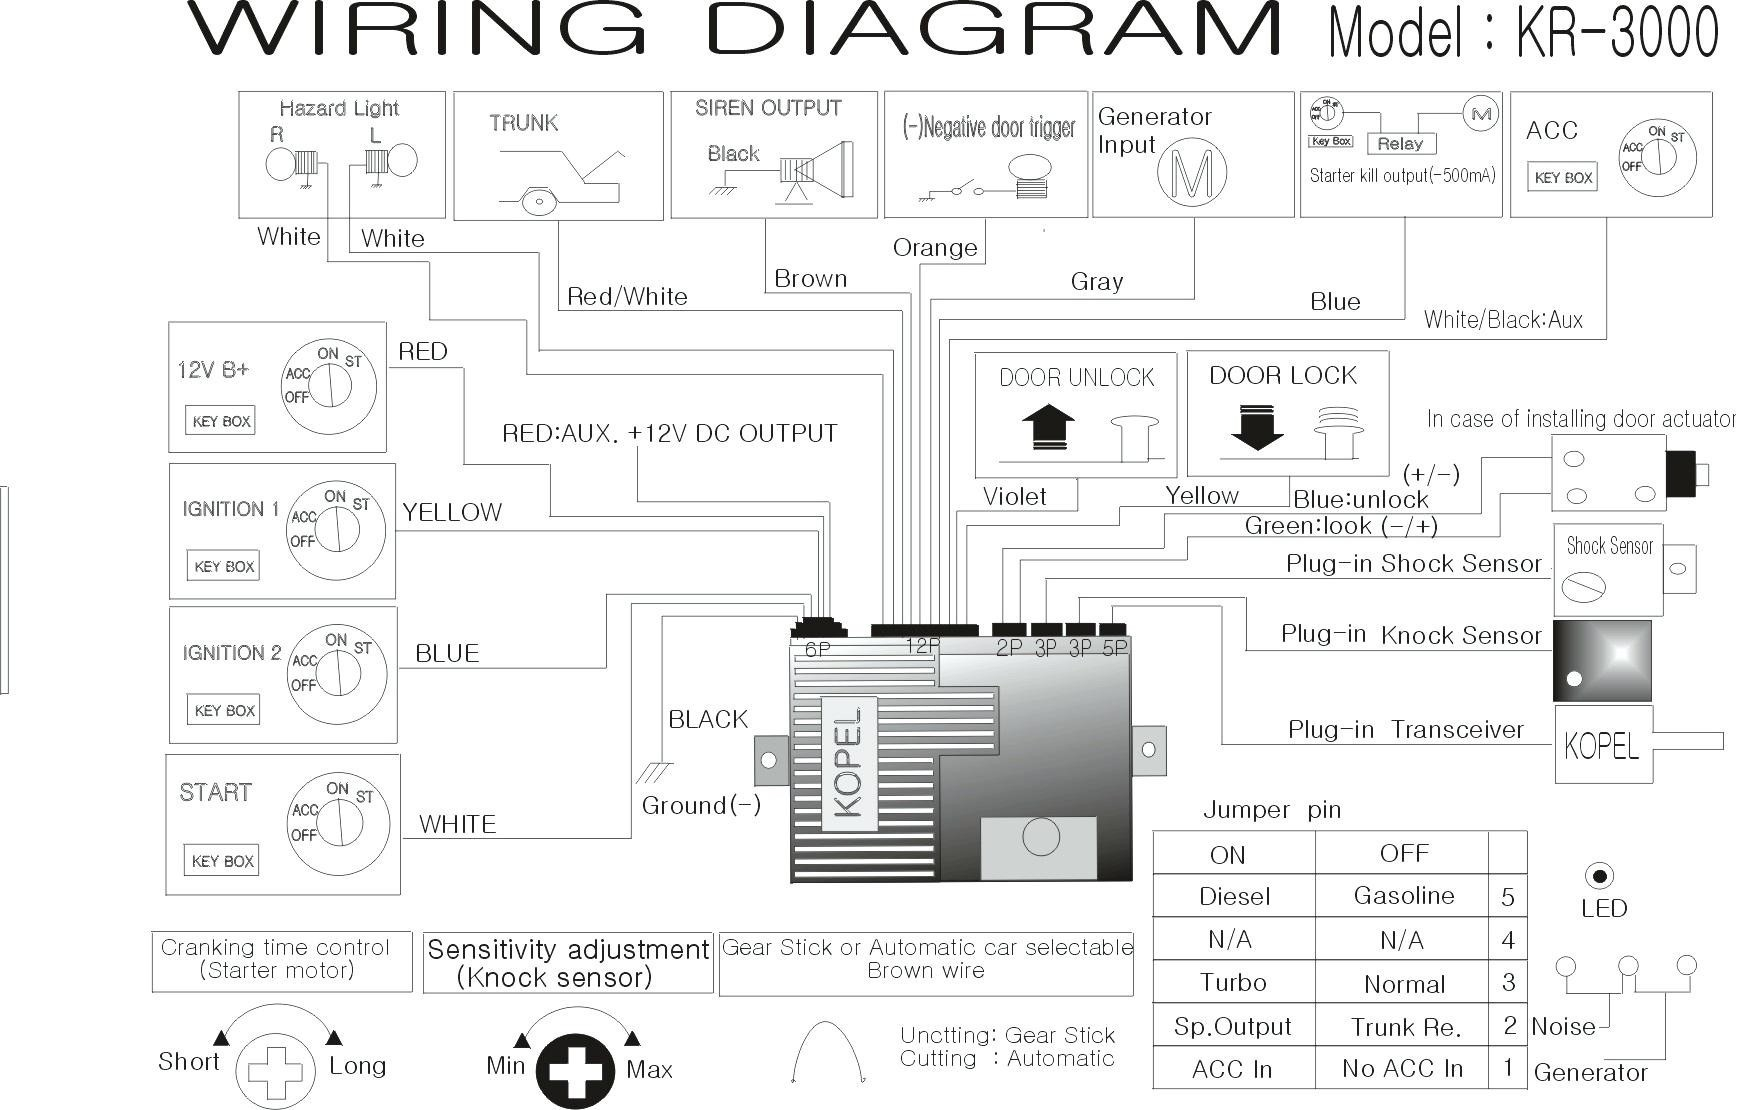 Gps Wiring Diagram - Wiring Diagram G9 on